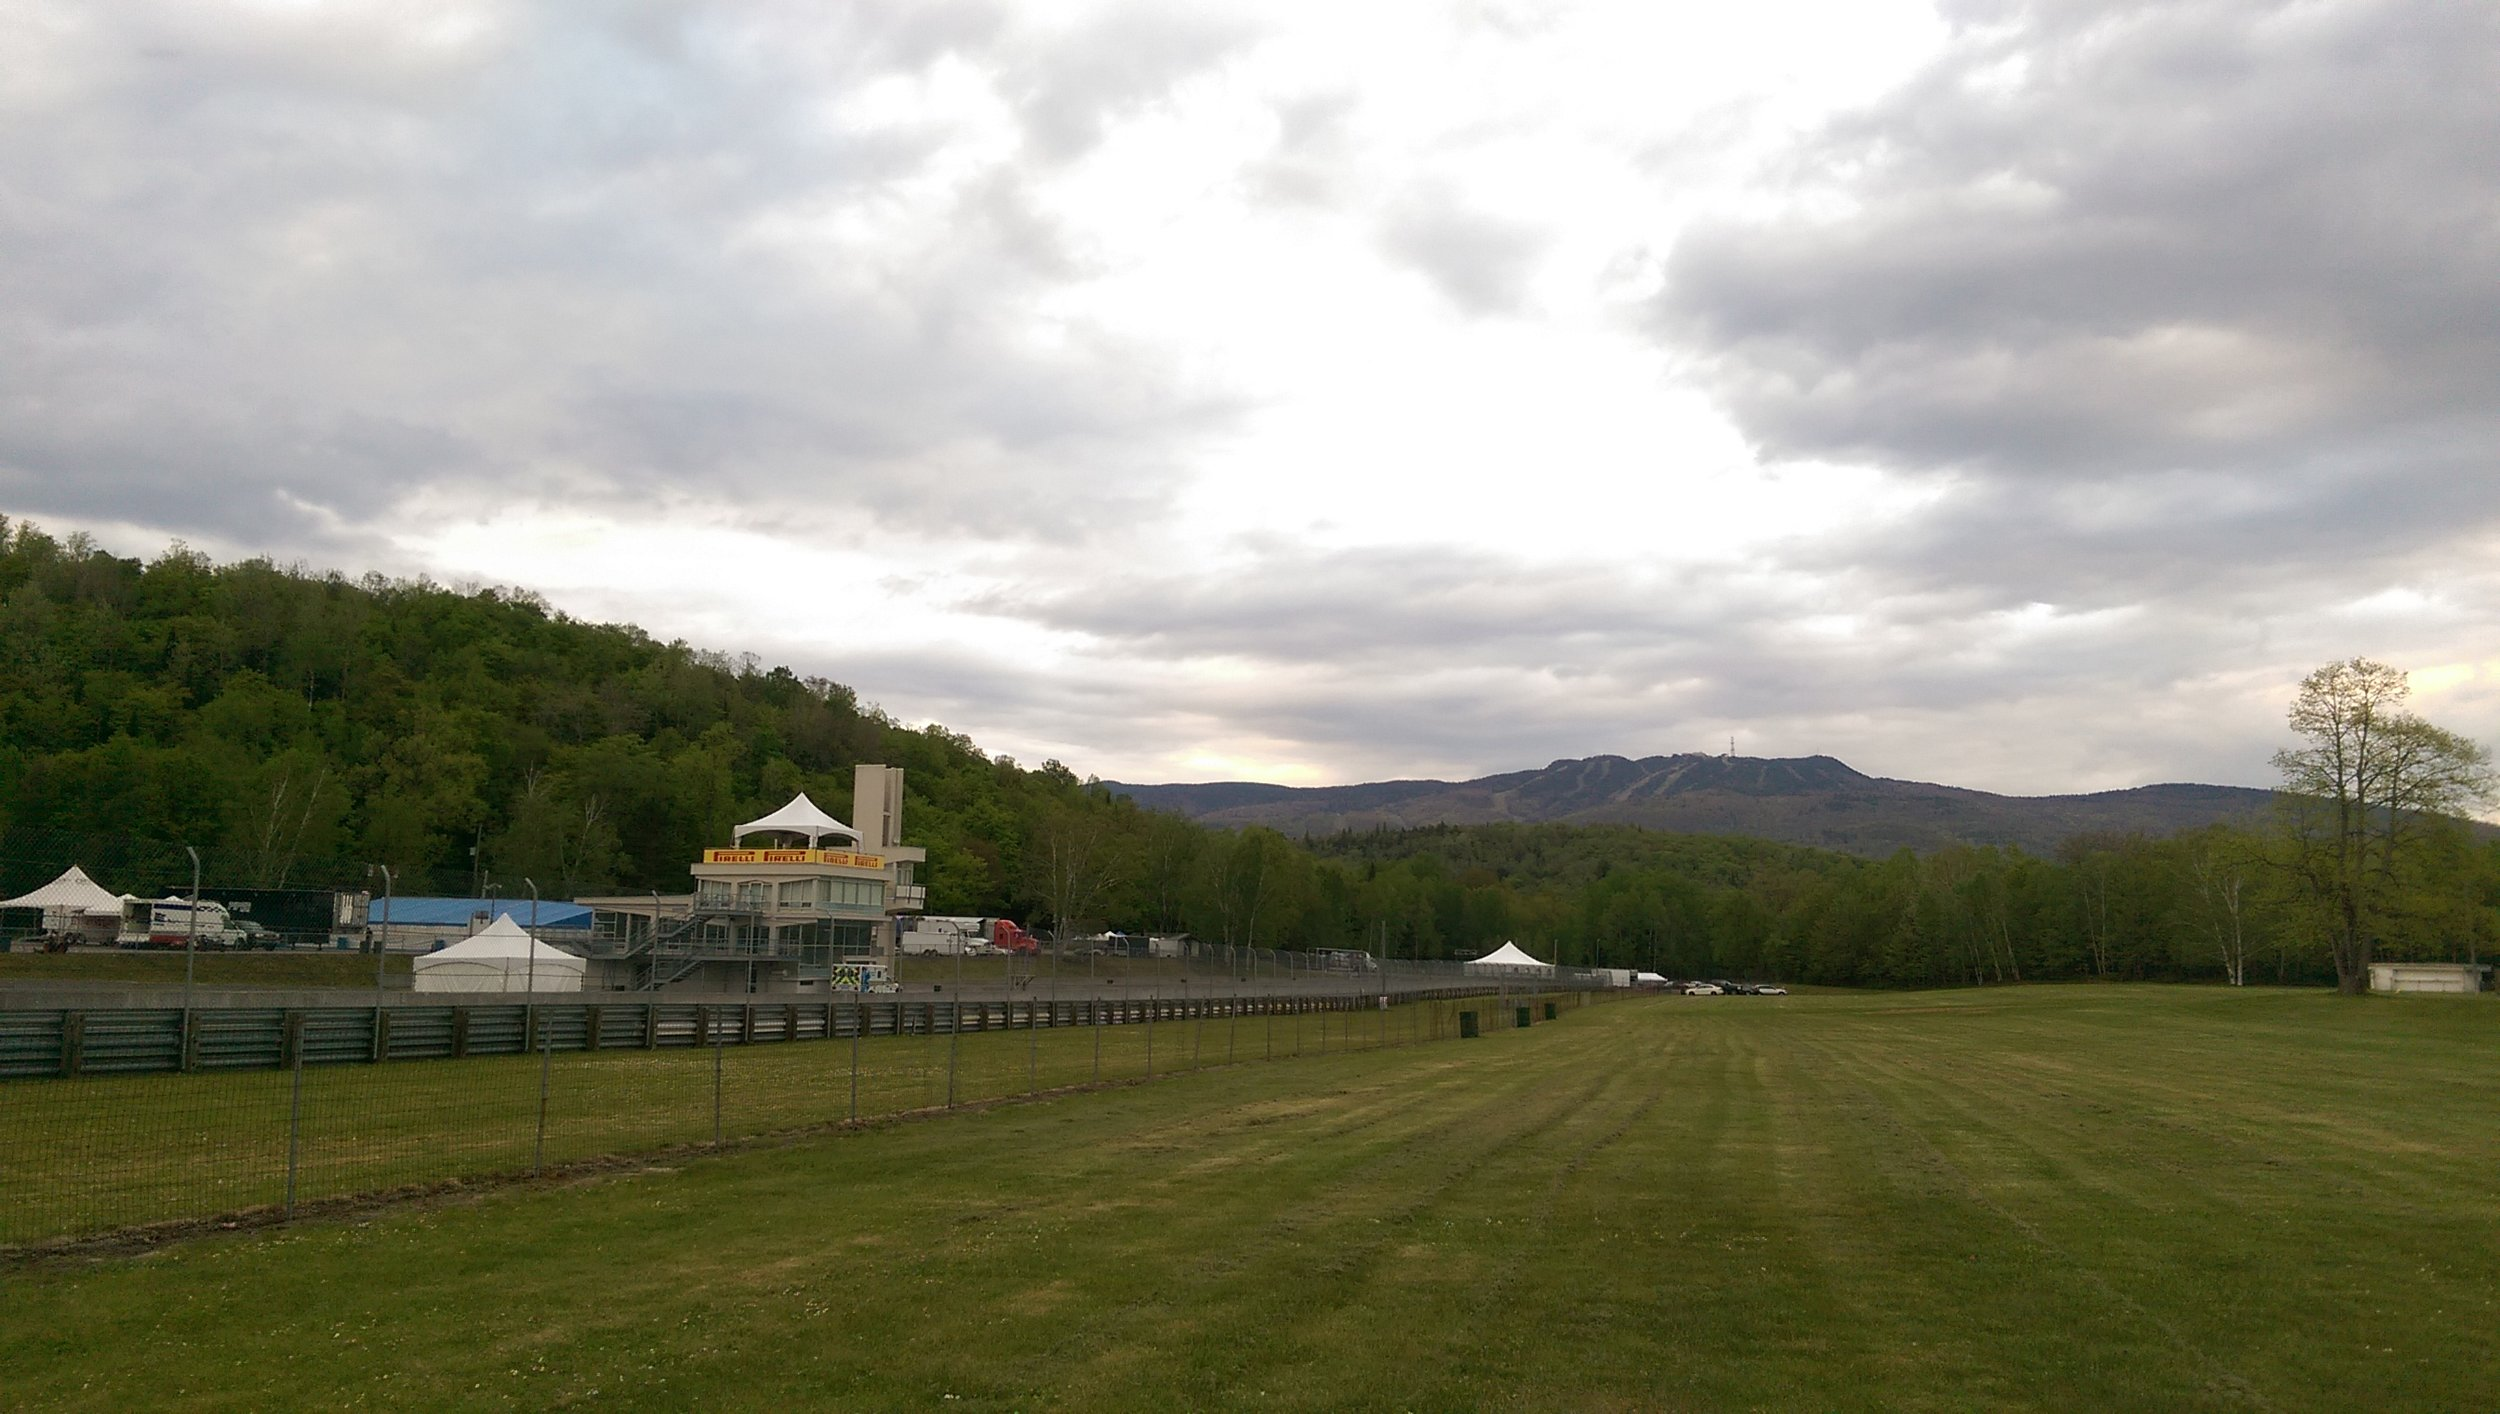 Circuit Mont-Tremblant is set amongst the foothills of Mont-Tremblant (pictured in the distance)